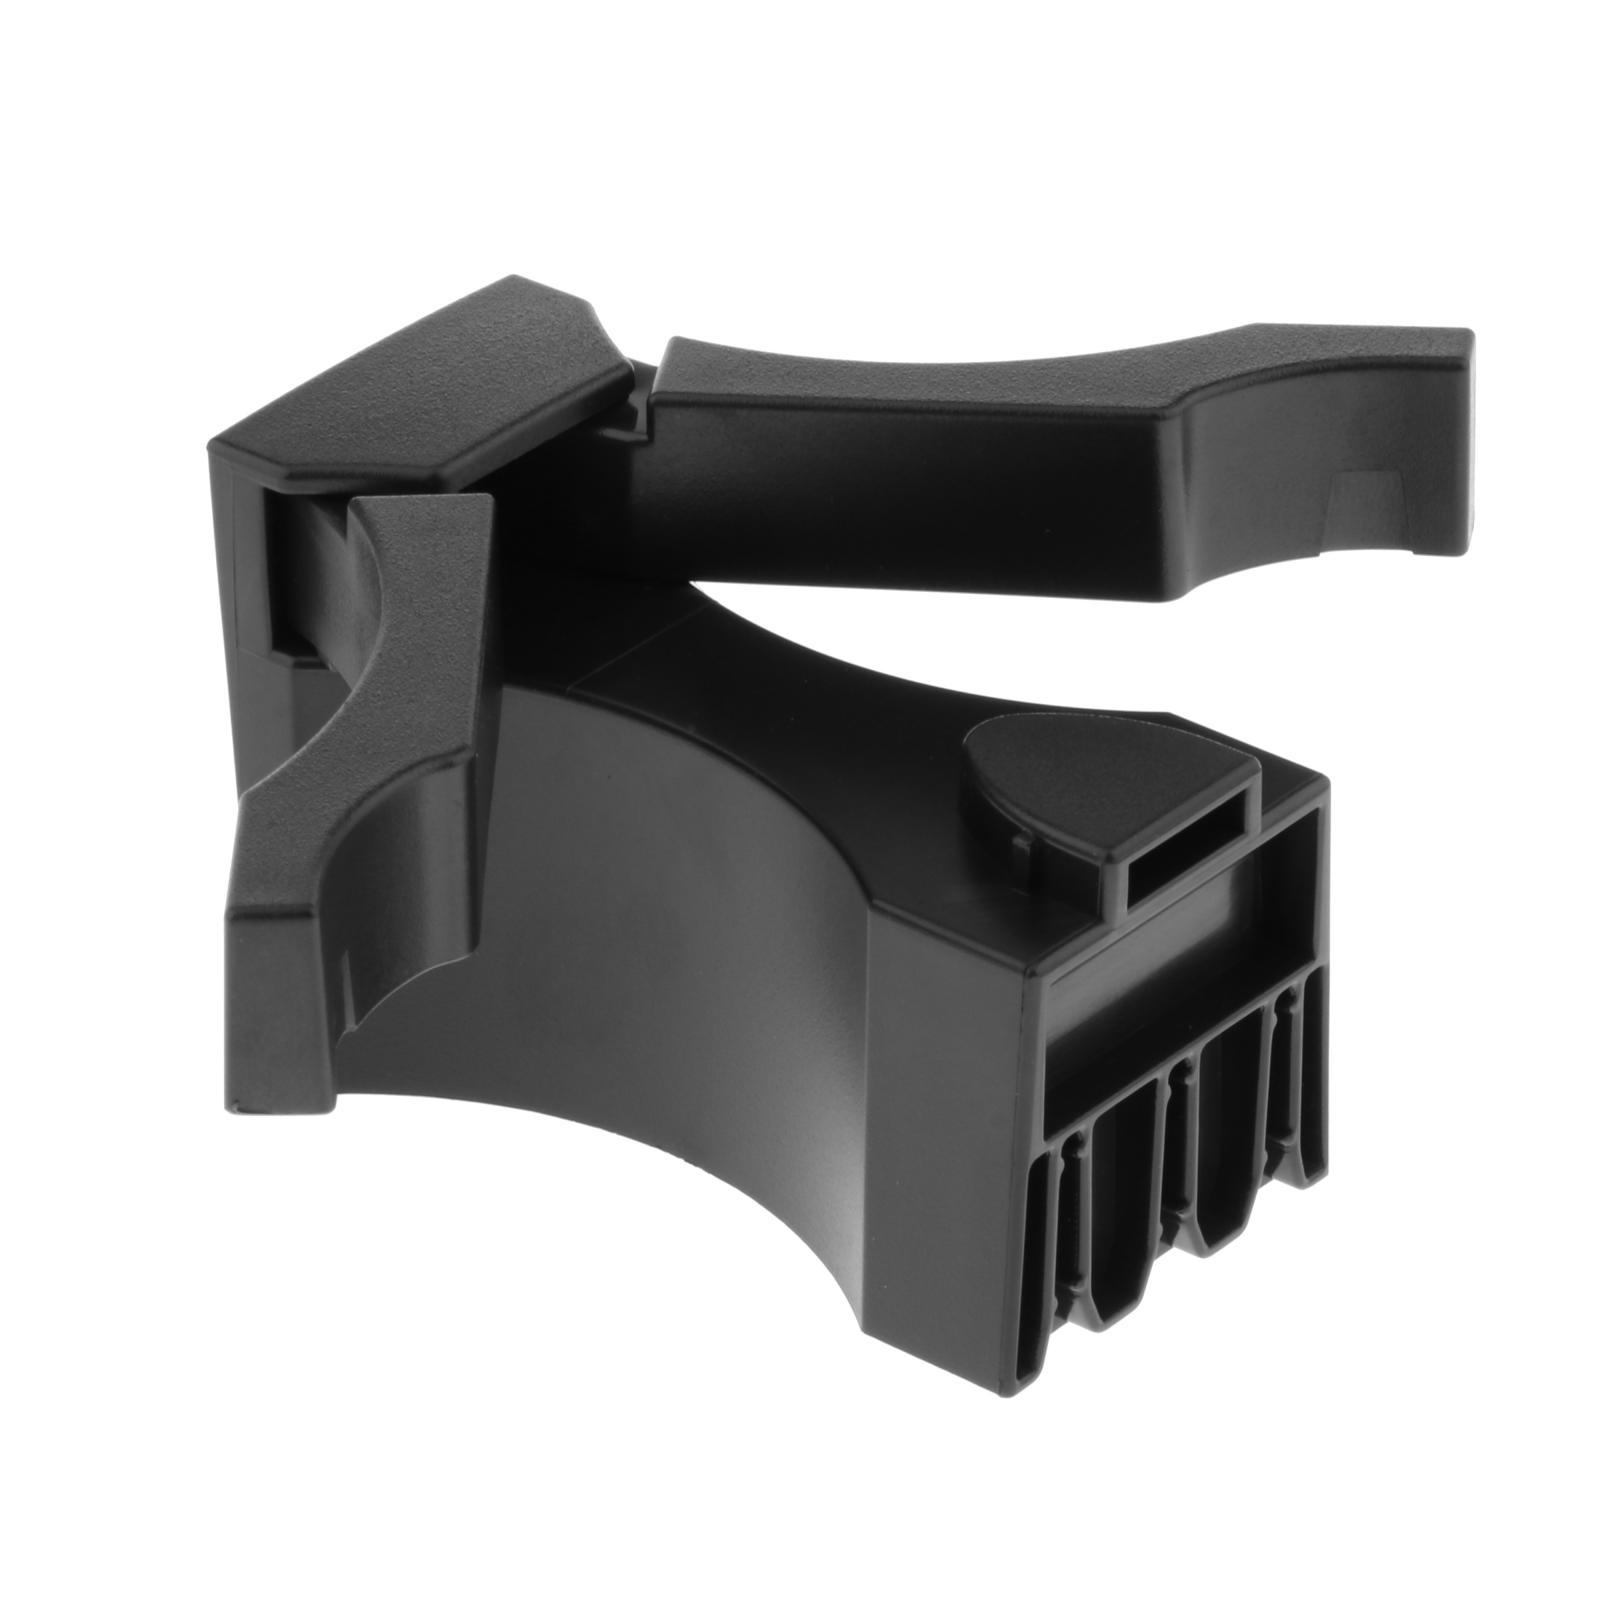 Vehicle Center Console Cup Holder Insert Divider Fit for Toyota Prado 02-09, Car Replace Accessories